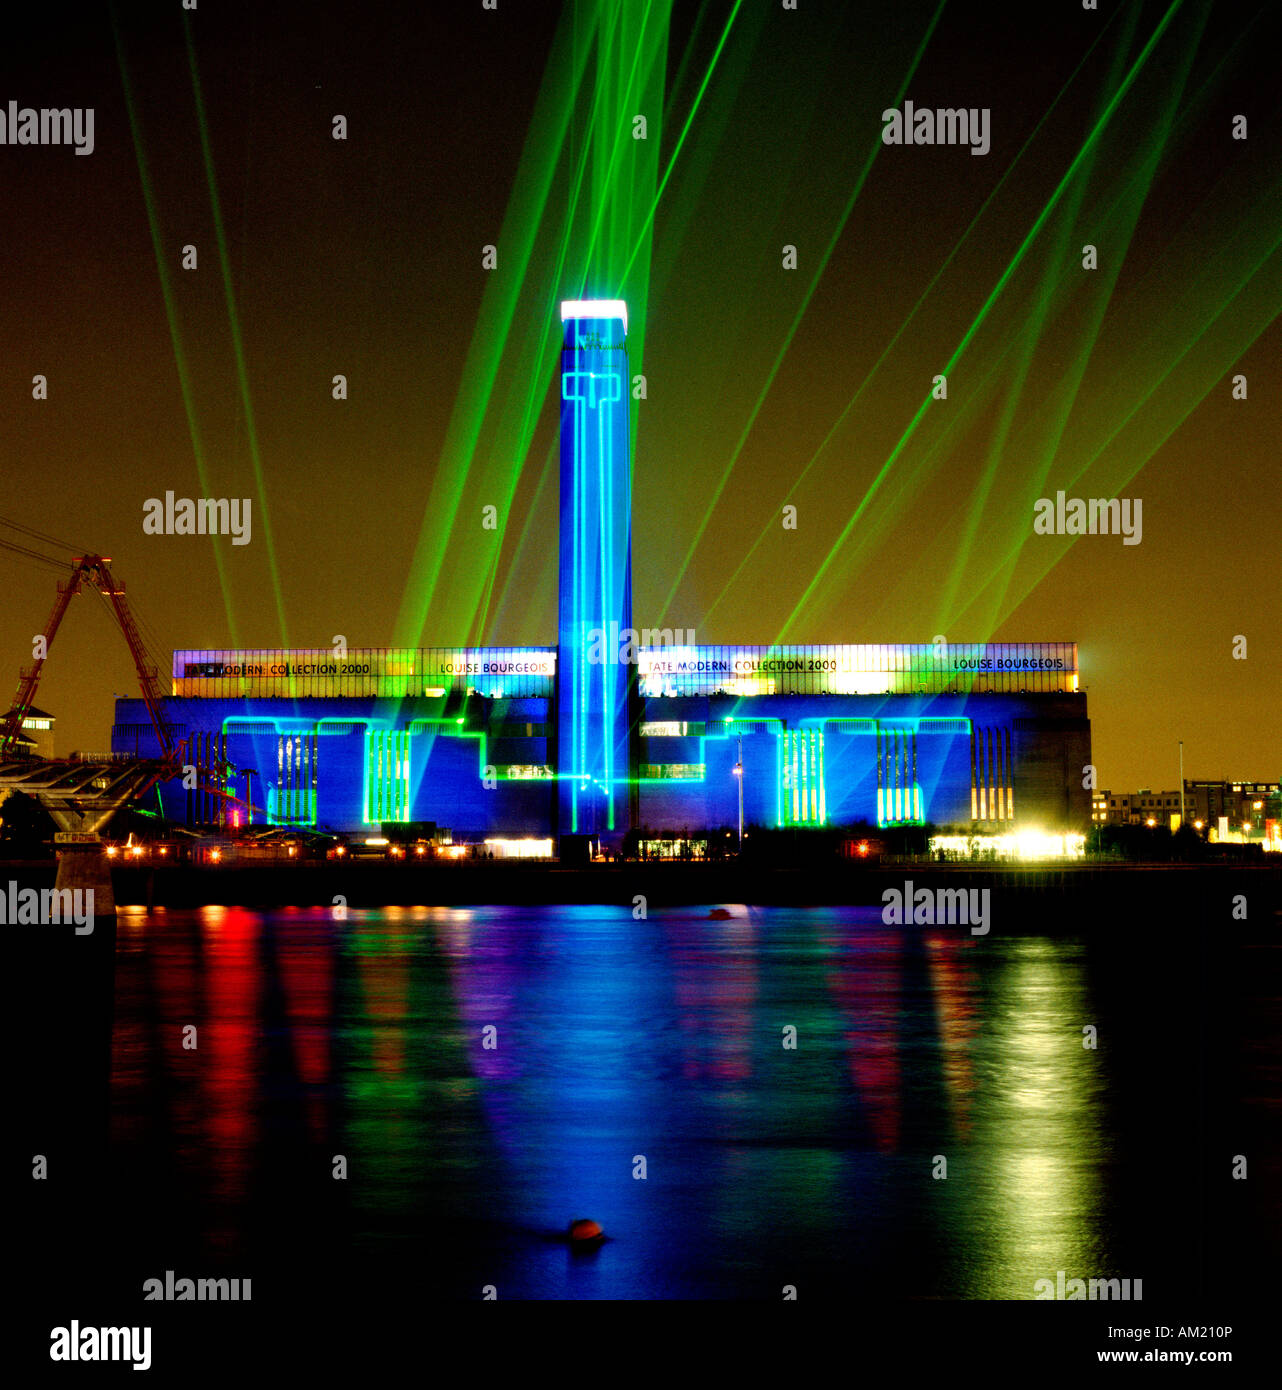 New Tate Modern Gallery opens to fantastic Laser Show across the River  Thames in London on 12 May 2000